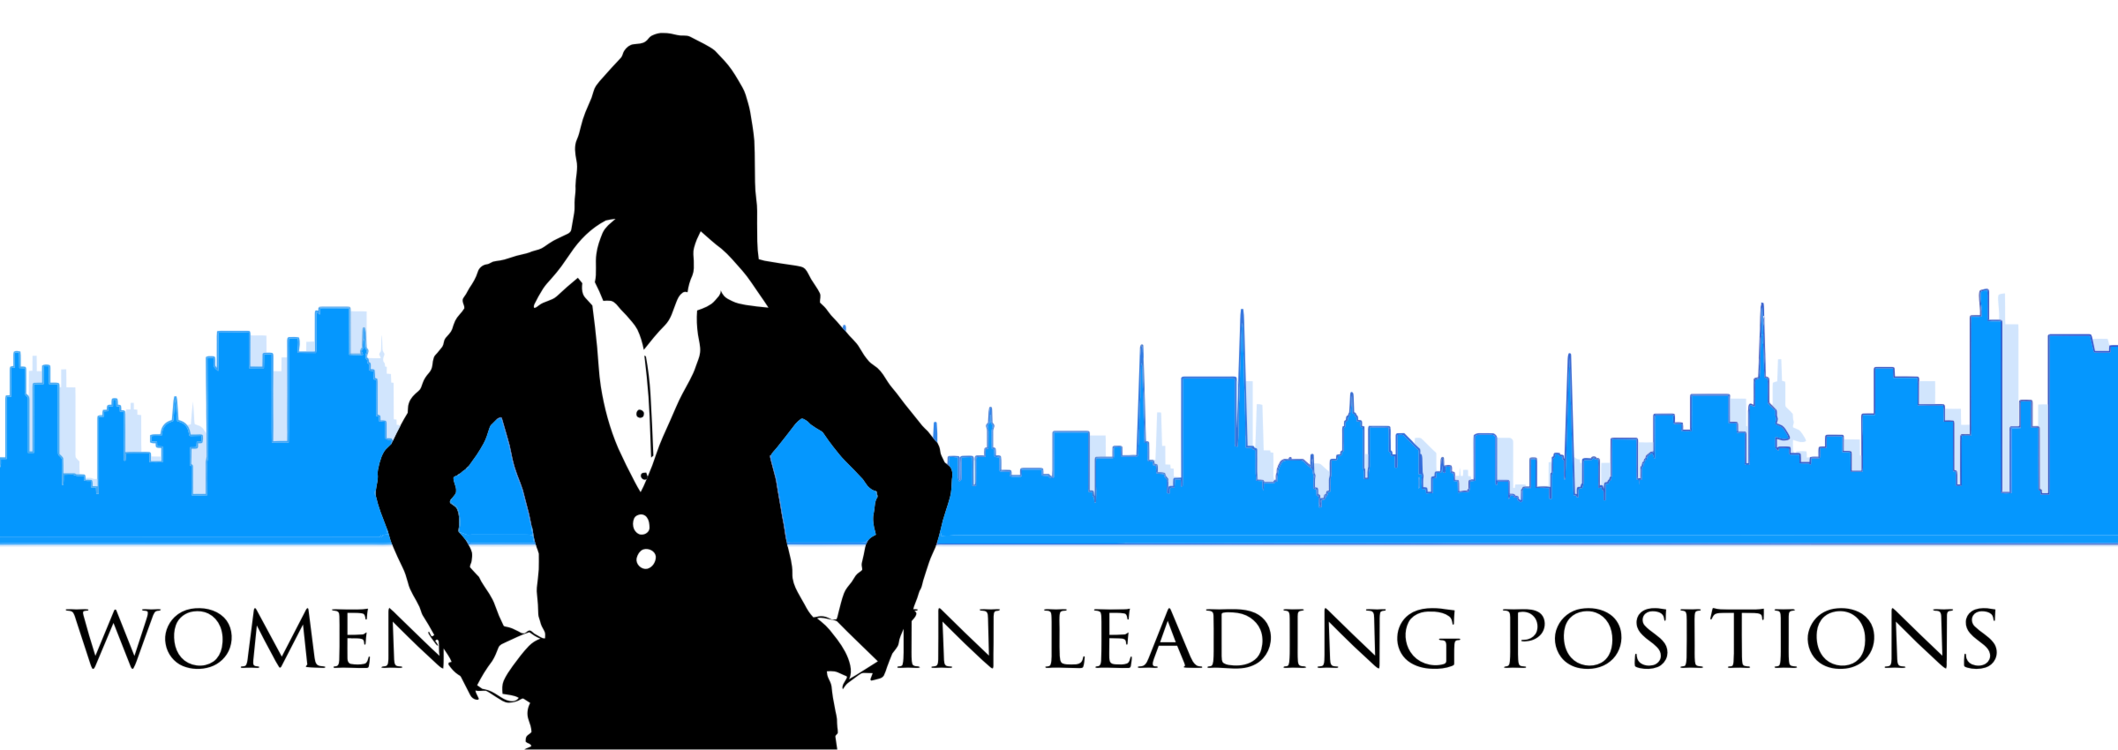 Businessperson female entrepreneurs corporation. Leadership vector clipart freeuse download